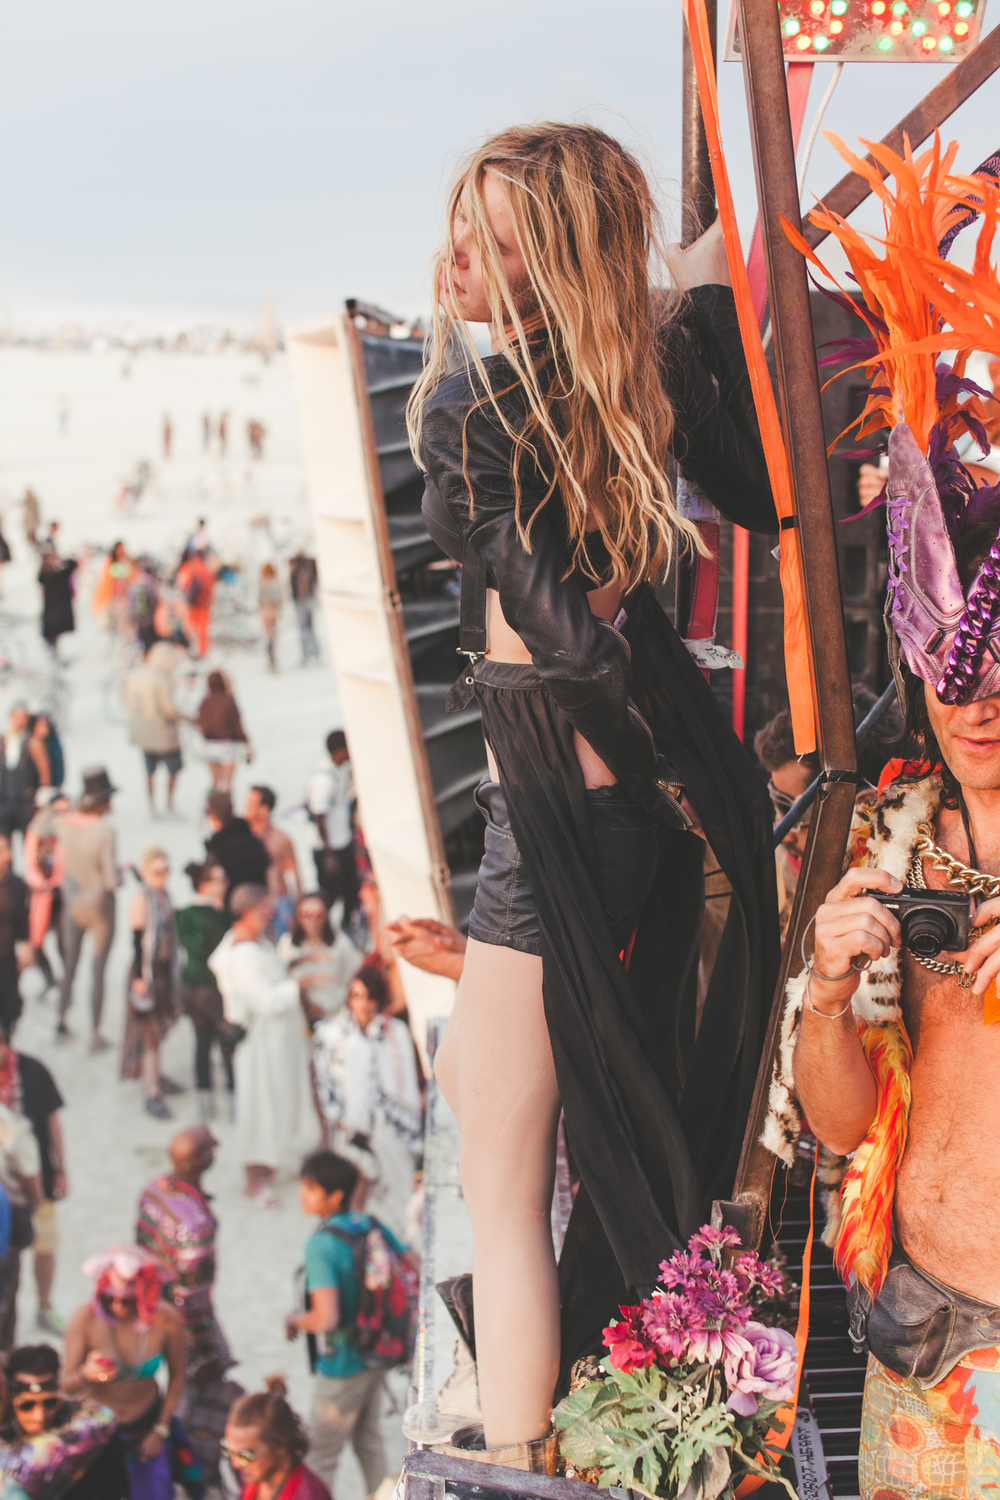 VOENA_BLACK_ROCK_CITY_BRC_BURNING_MAN_2013_PHOTOGRAPHY_EDITORIAL_SAM_WHITESIDE_CAI_GRIFFIN_DESERT_BURNERS-16.jpg